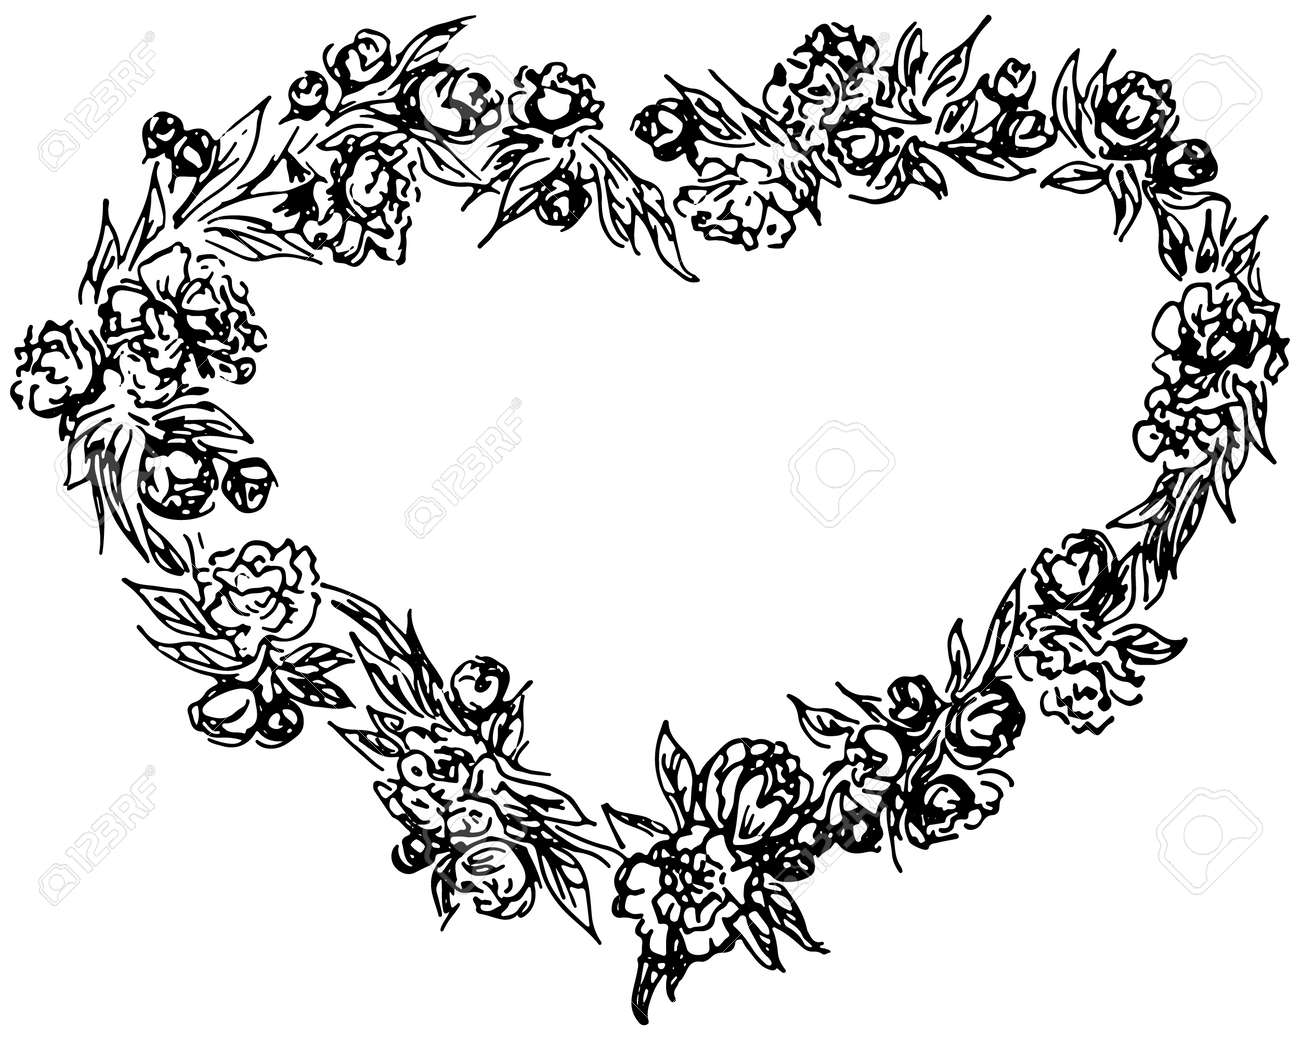 vector wreath in form of heart. Floral circle frame design elements for invitations, greeting cards, posters, blogs. Delicate set of flowers, branches and leaves - 122345786